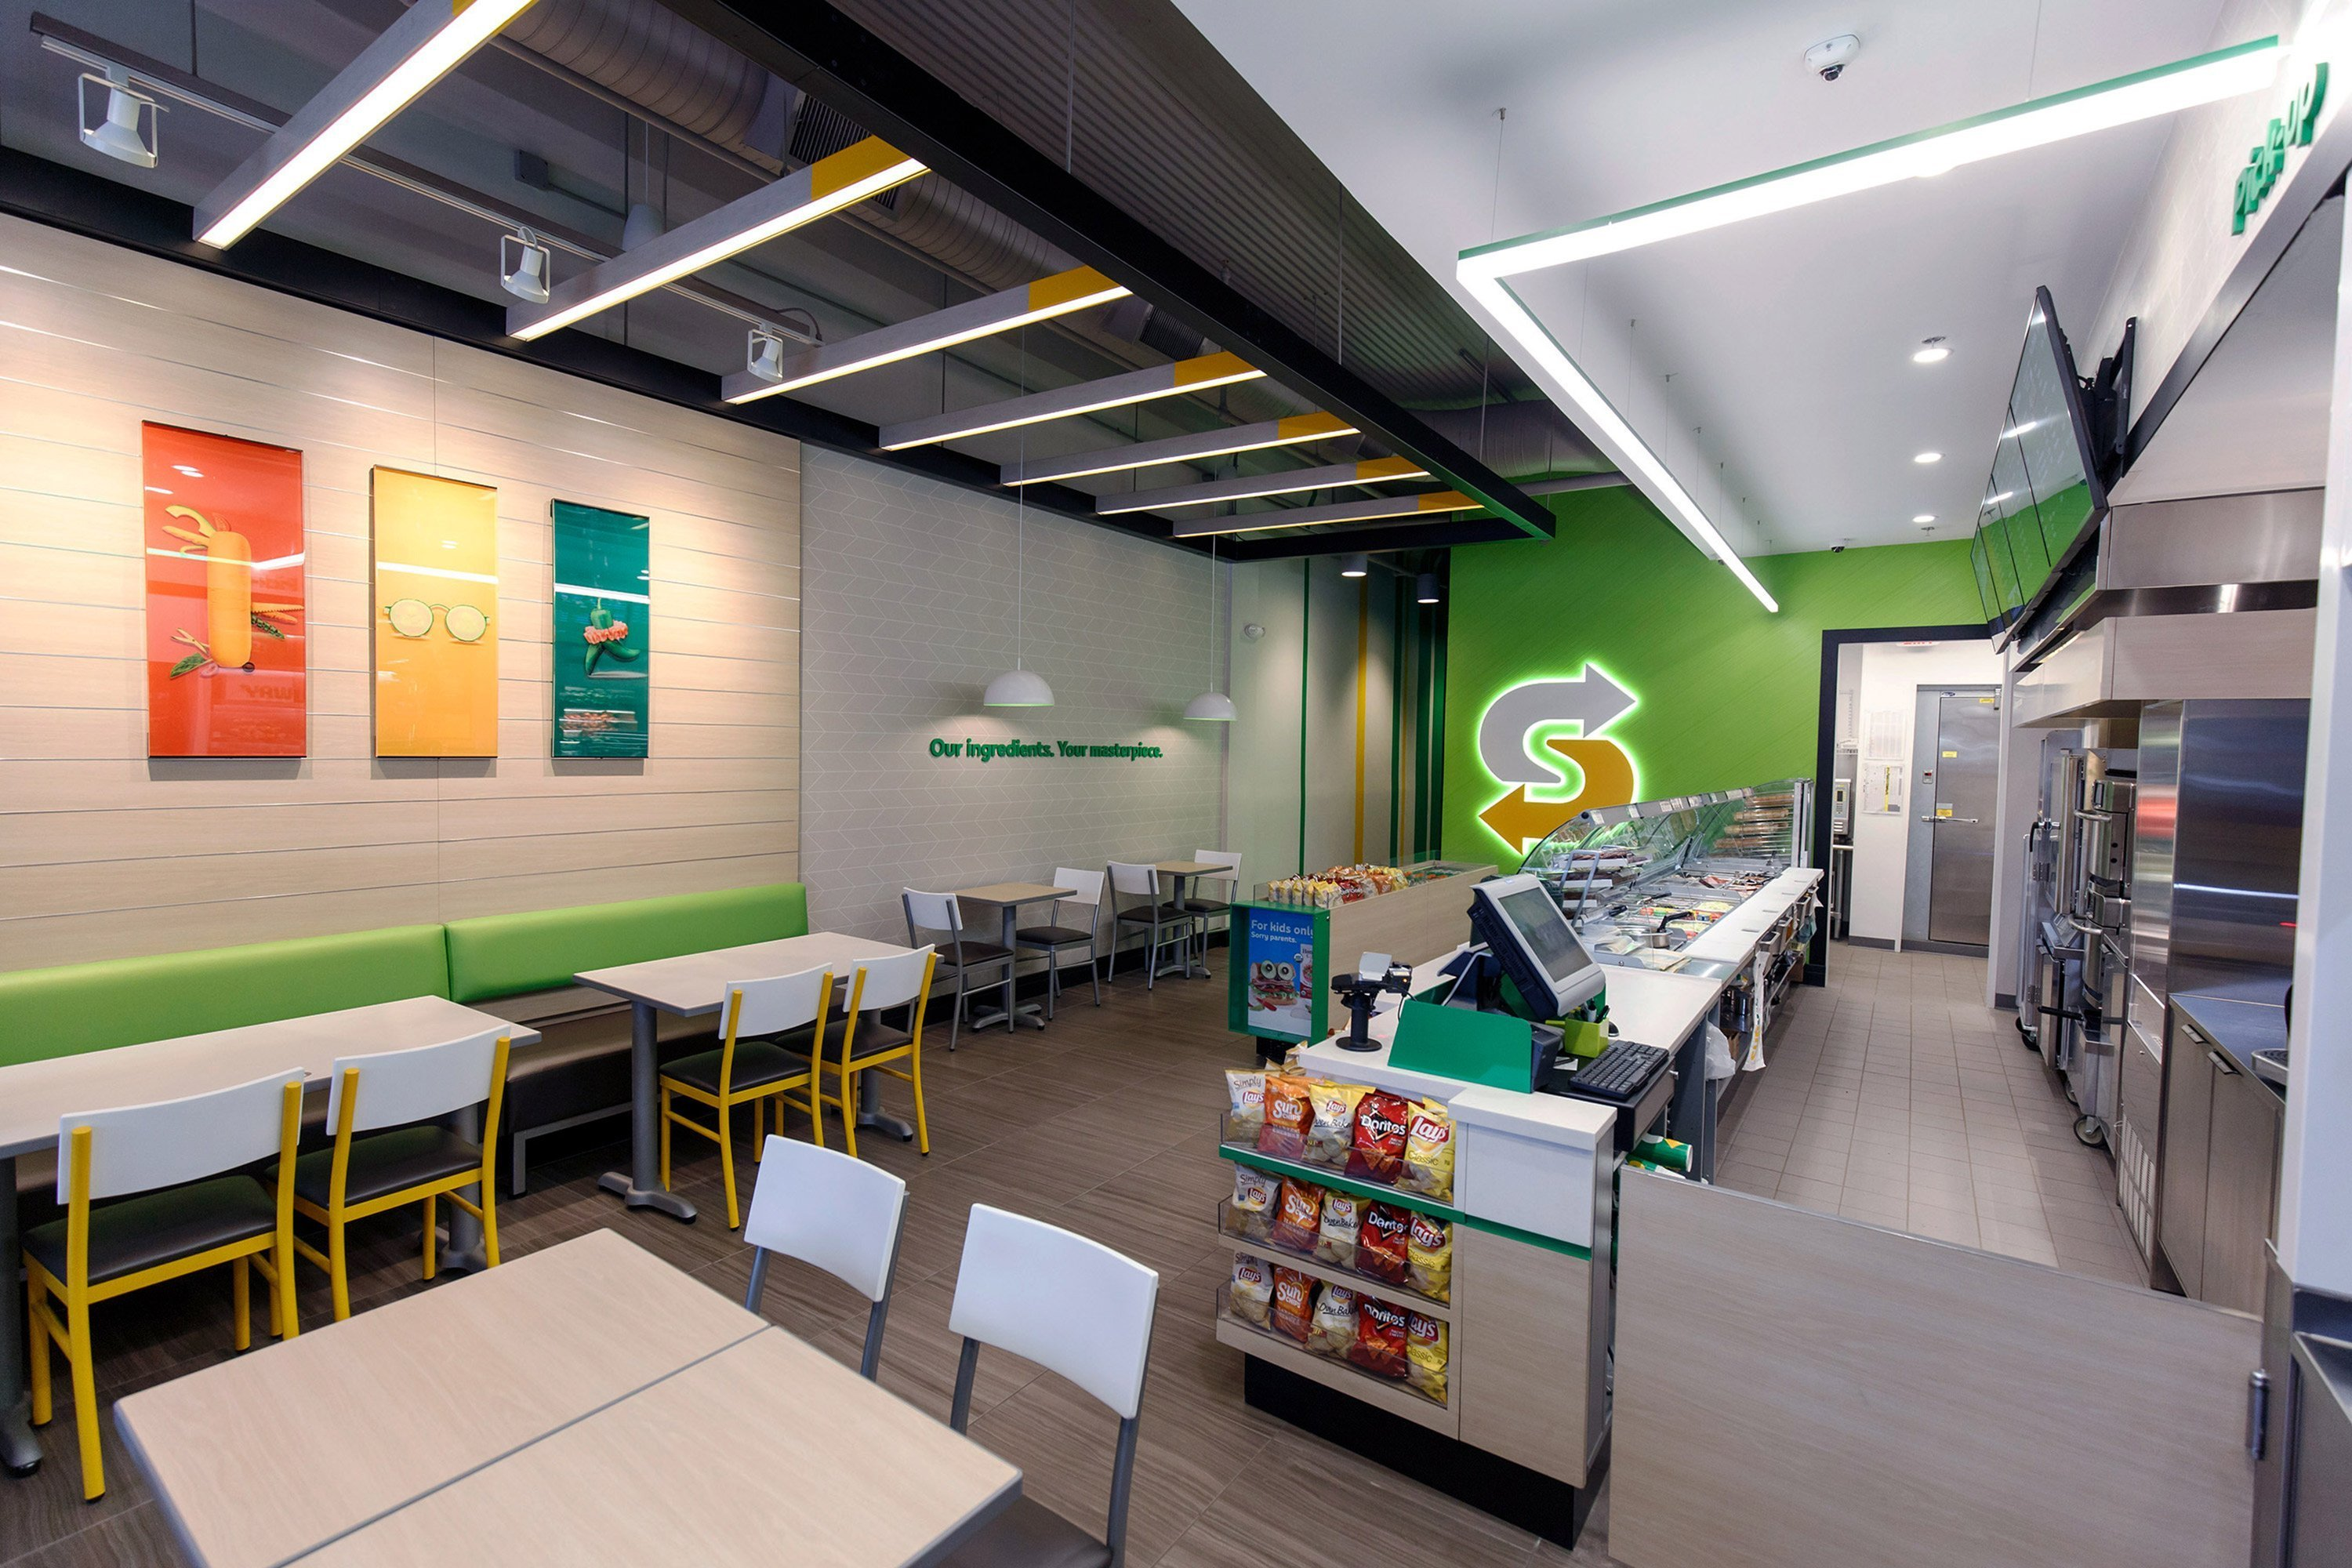 Subway restaurants, which boasts more than 40,000 locations globally, is rolling out a new look for its stores, the company announced Monday, July 17, 2017.